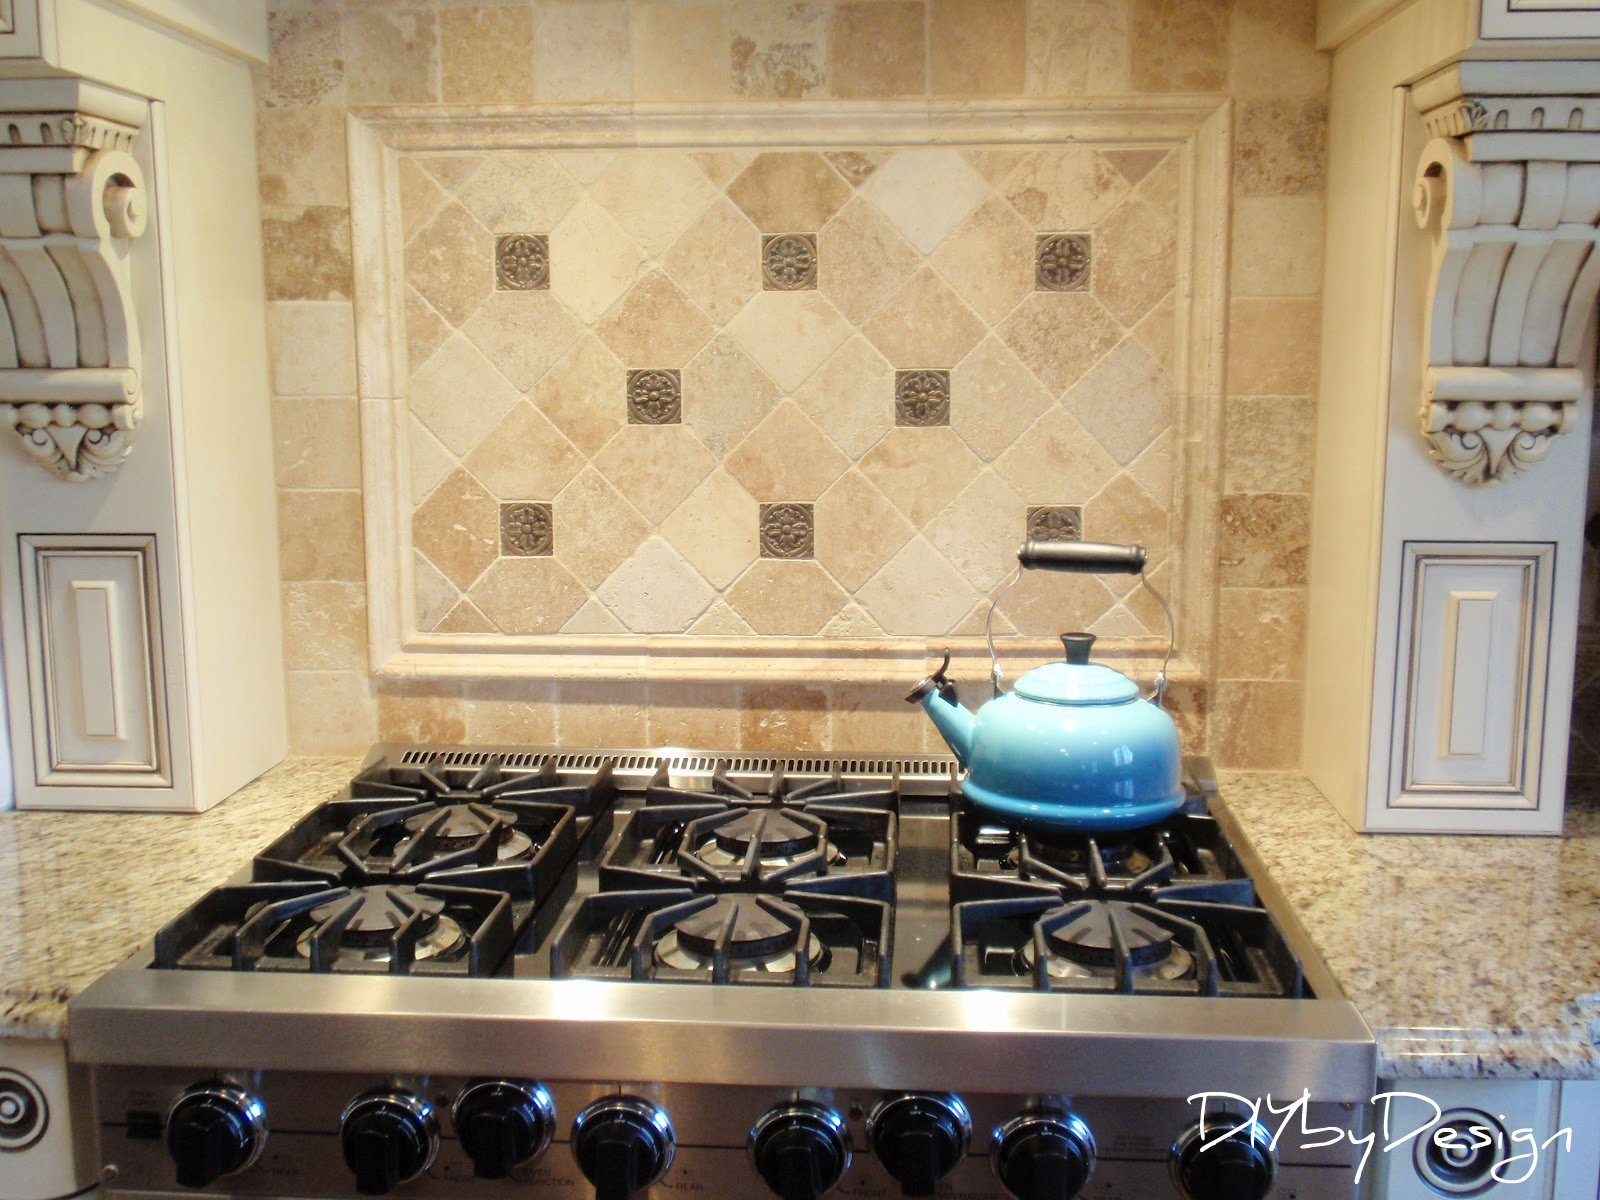 Tumbled Marble Kitchen Backsplash Diy By Design Tumbled Marble Coasters Tutorial